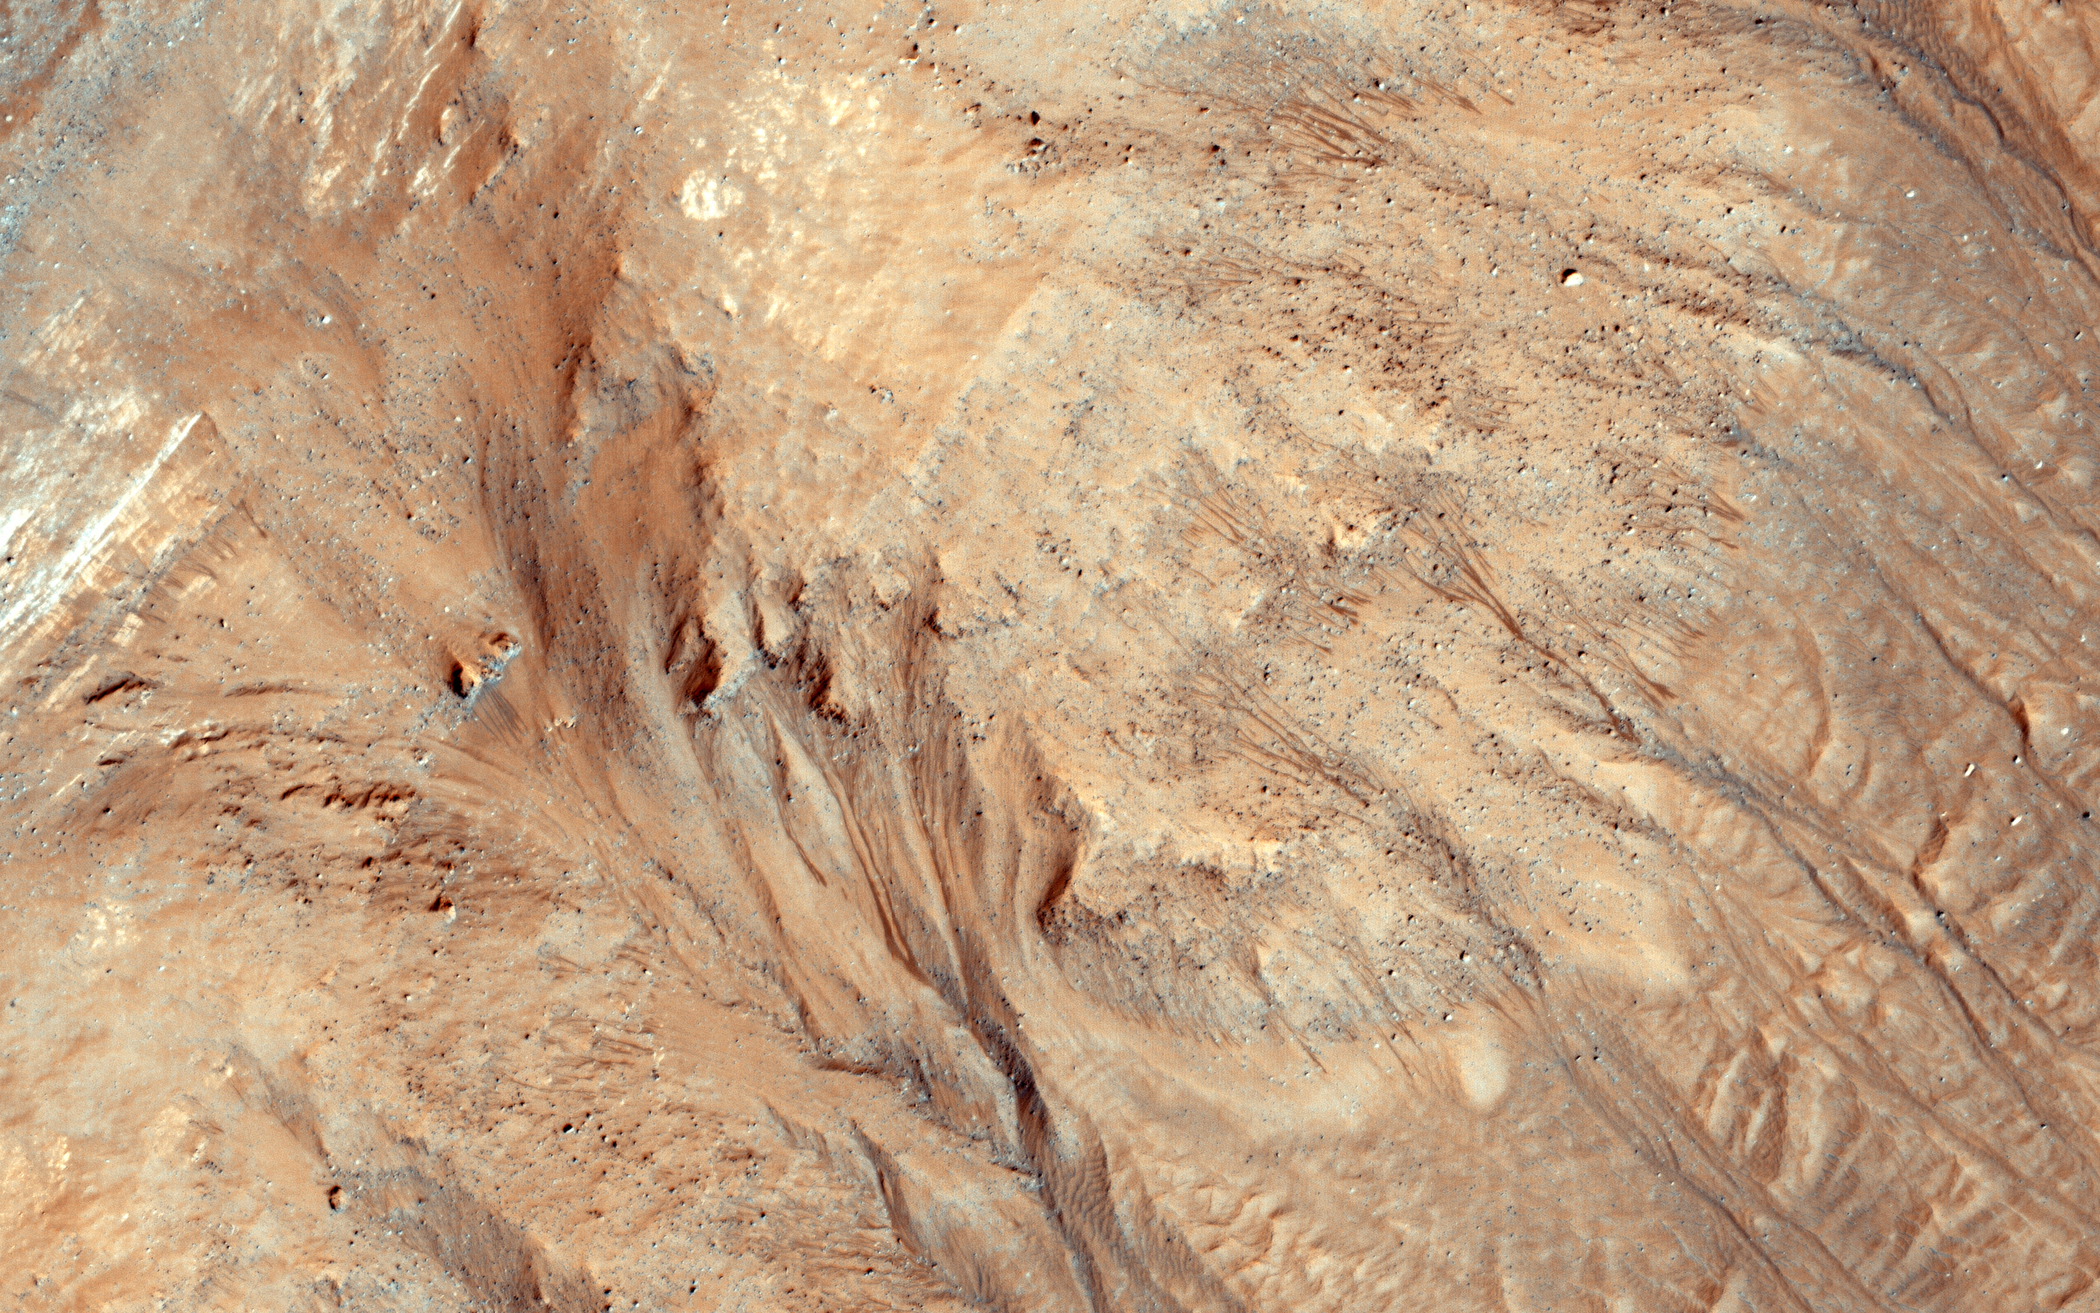 Ravines (or very large gullies) are actively forming on Mars during the coldest times of year, when carbon dioxide frost aids mass wasting. In this image, acquired on March 25, 2015, we see warm-season flows in cold-season ravines.